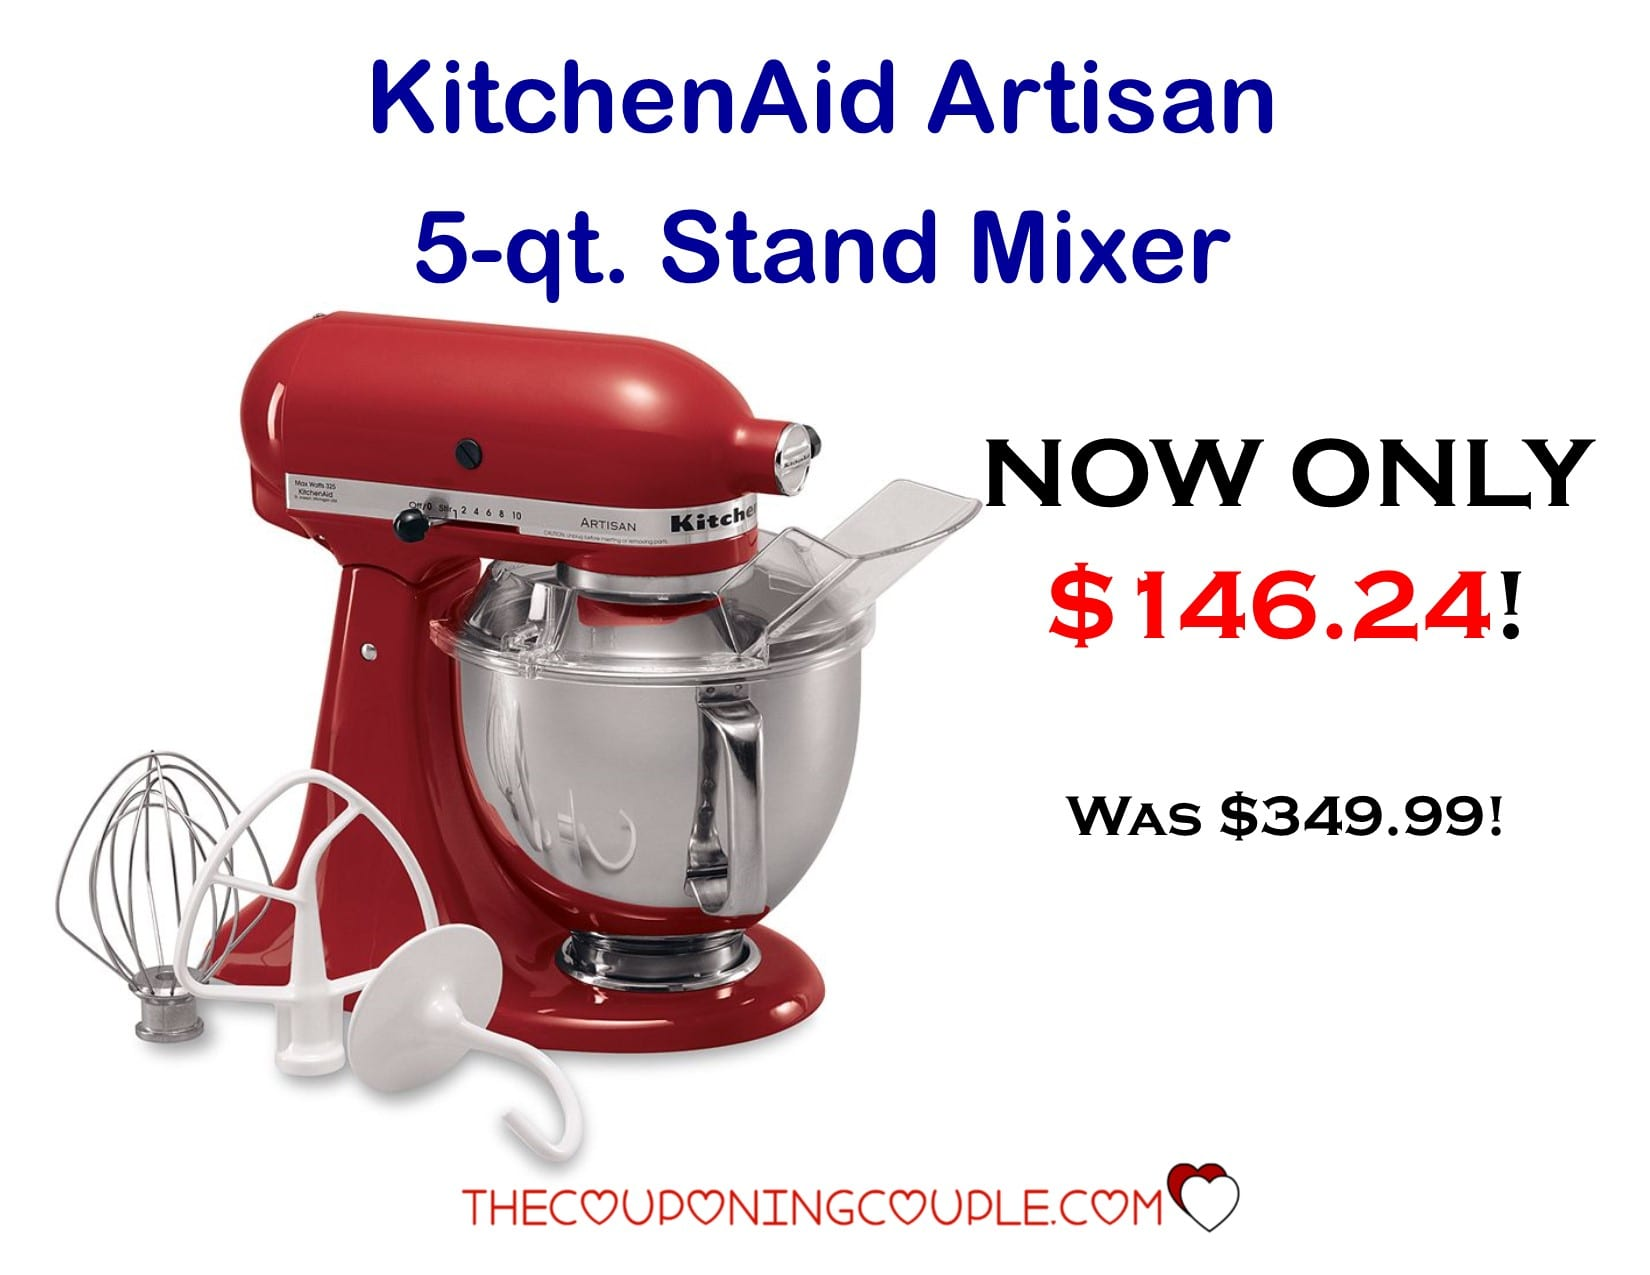 KitchenAid Artisan 5 Quart Mixer- Only $146.24! {Down from $349.99}